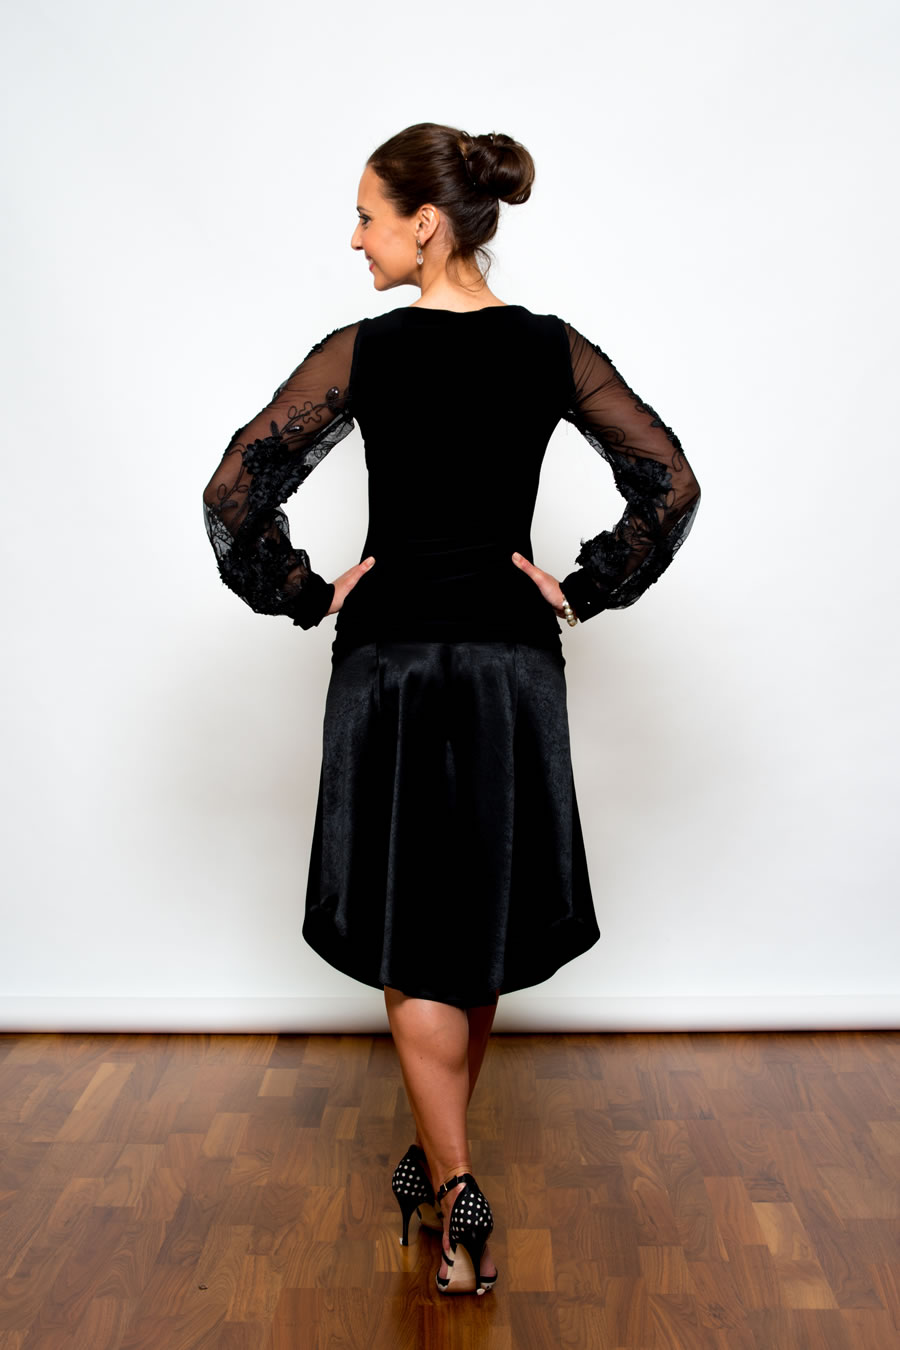 Tango Clothing Dresses Amp Fashion Made In The Uk